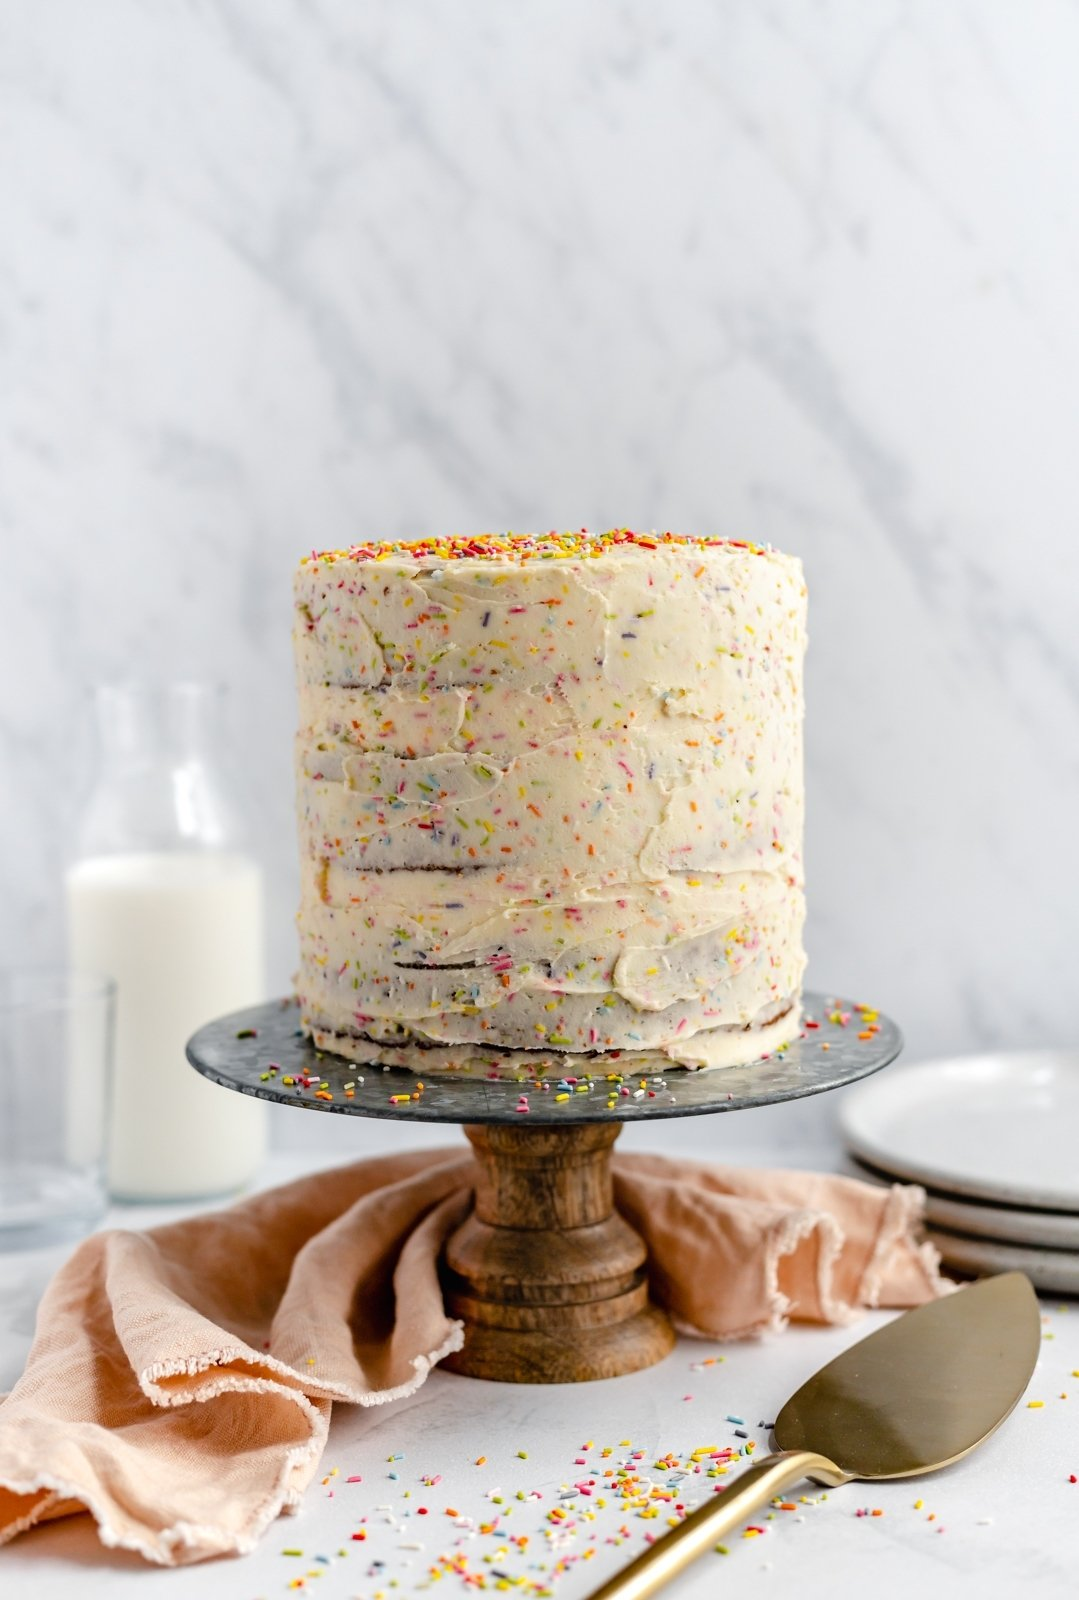 dairy free birthday cake with sprinkles on a cake stand